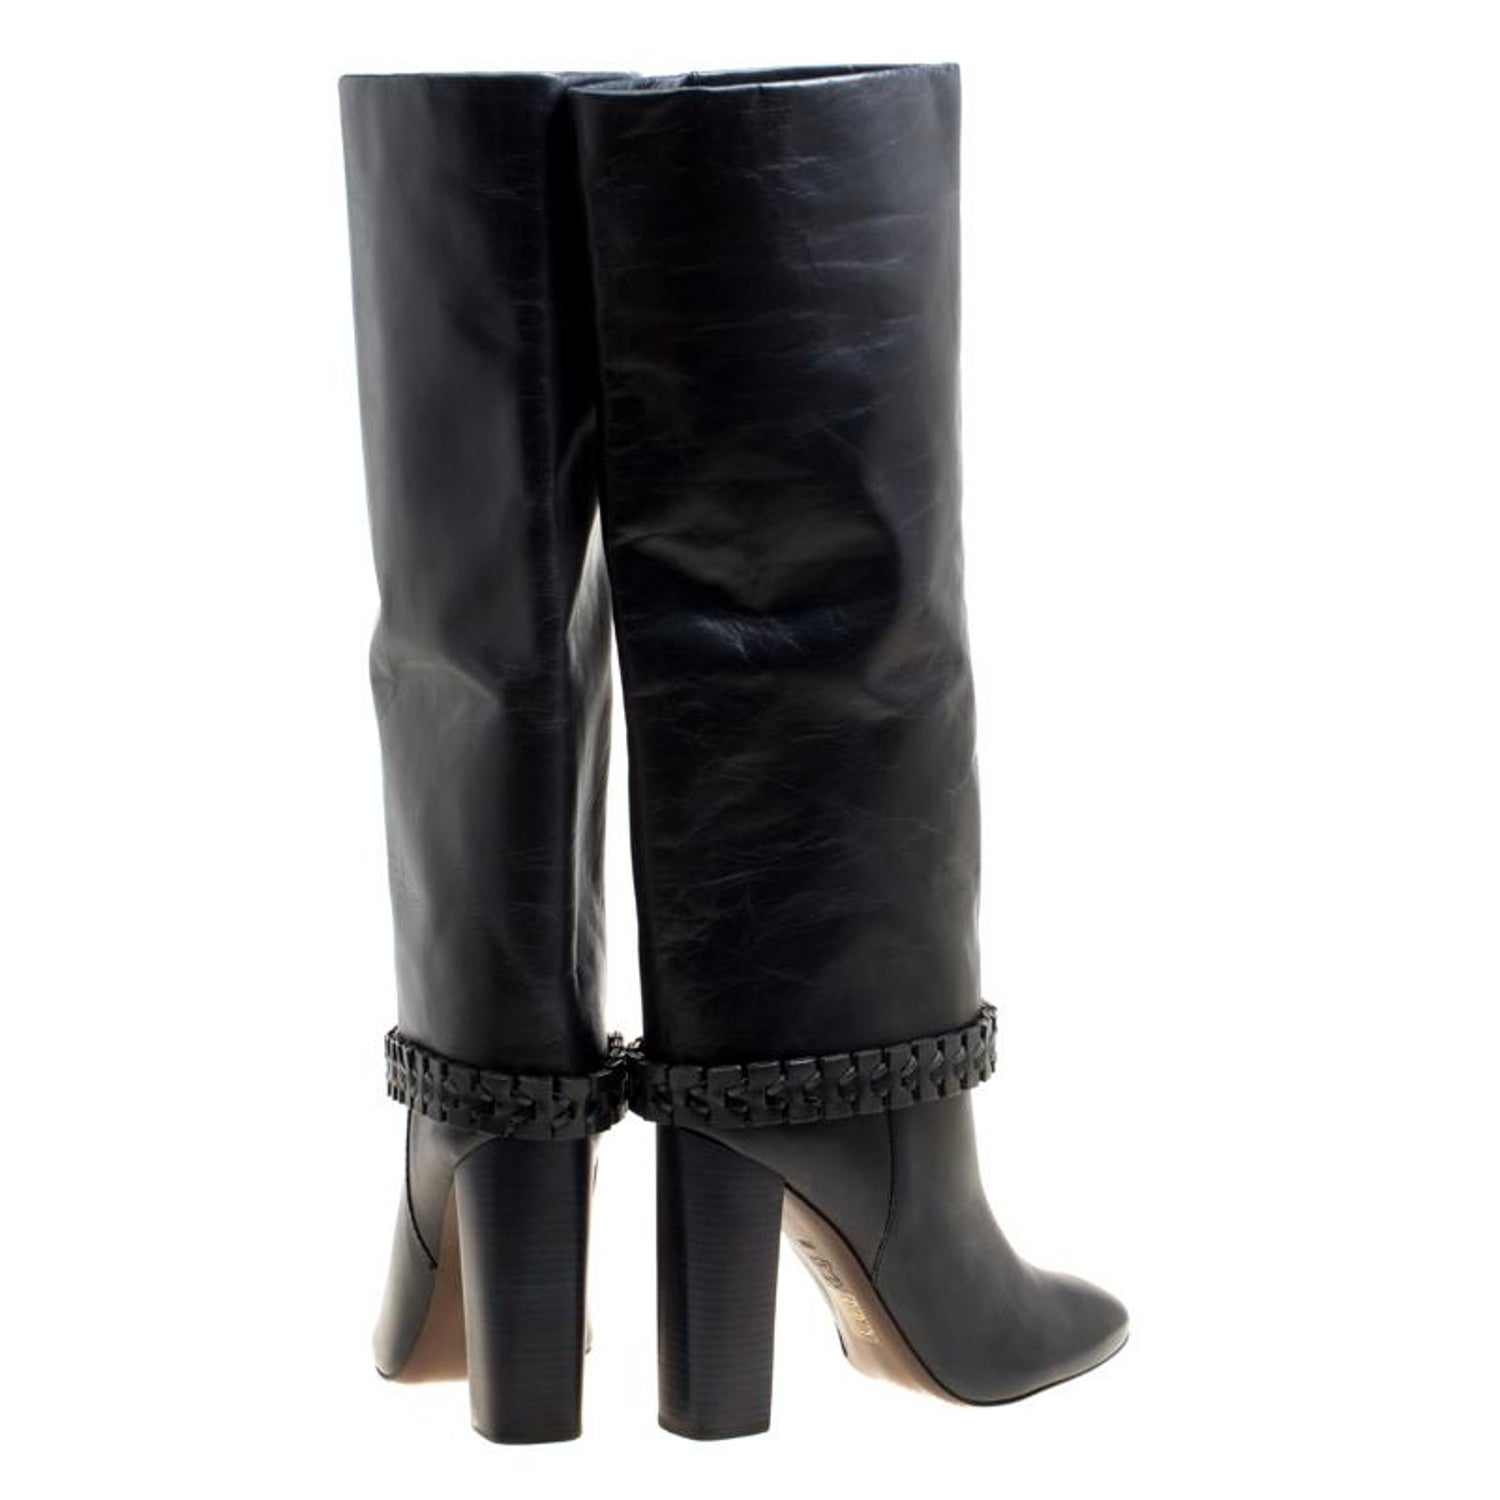 dd2e8084c494 Tory Burch Dark Blue Leather Sarava Braid Detail Knee Boots Size 40 For Sale  at 1stdibs